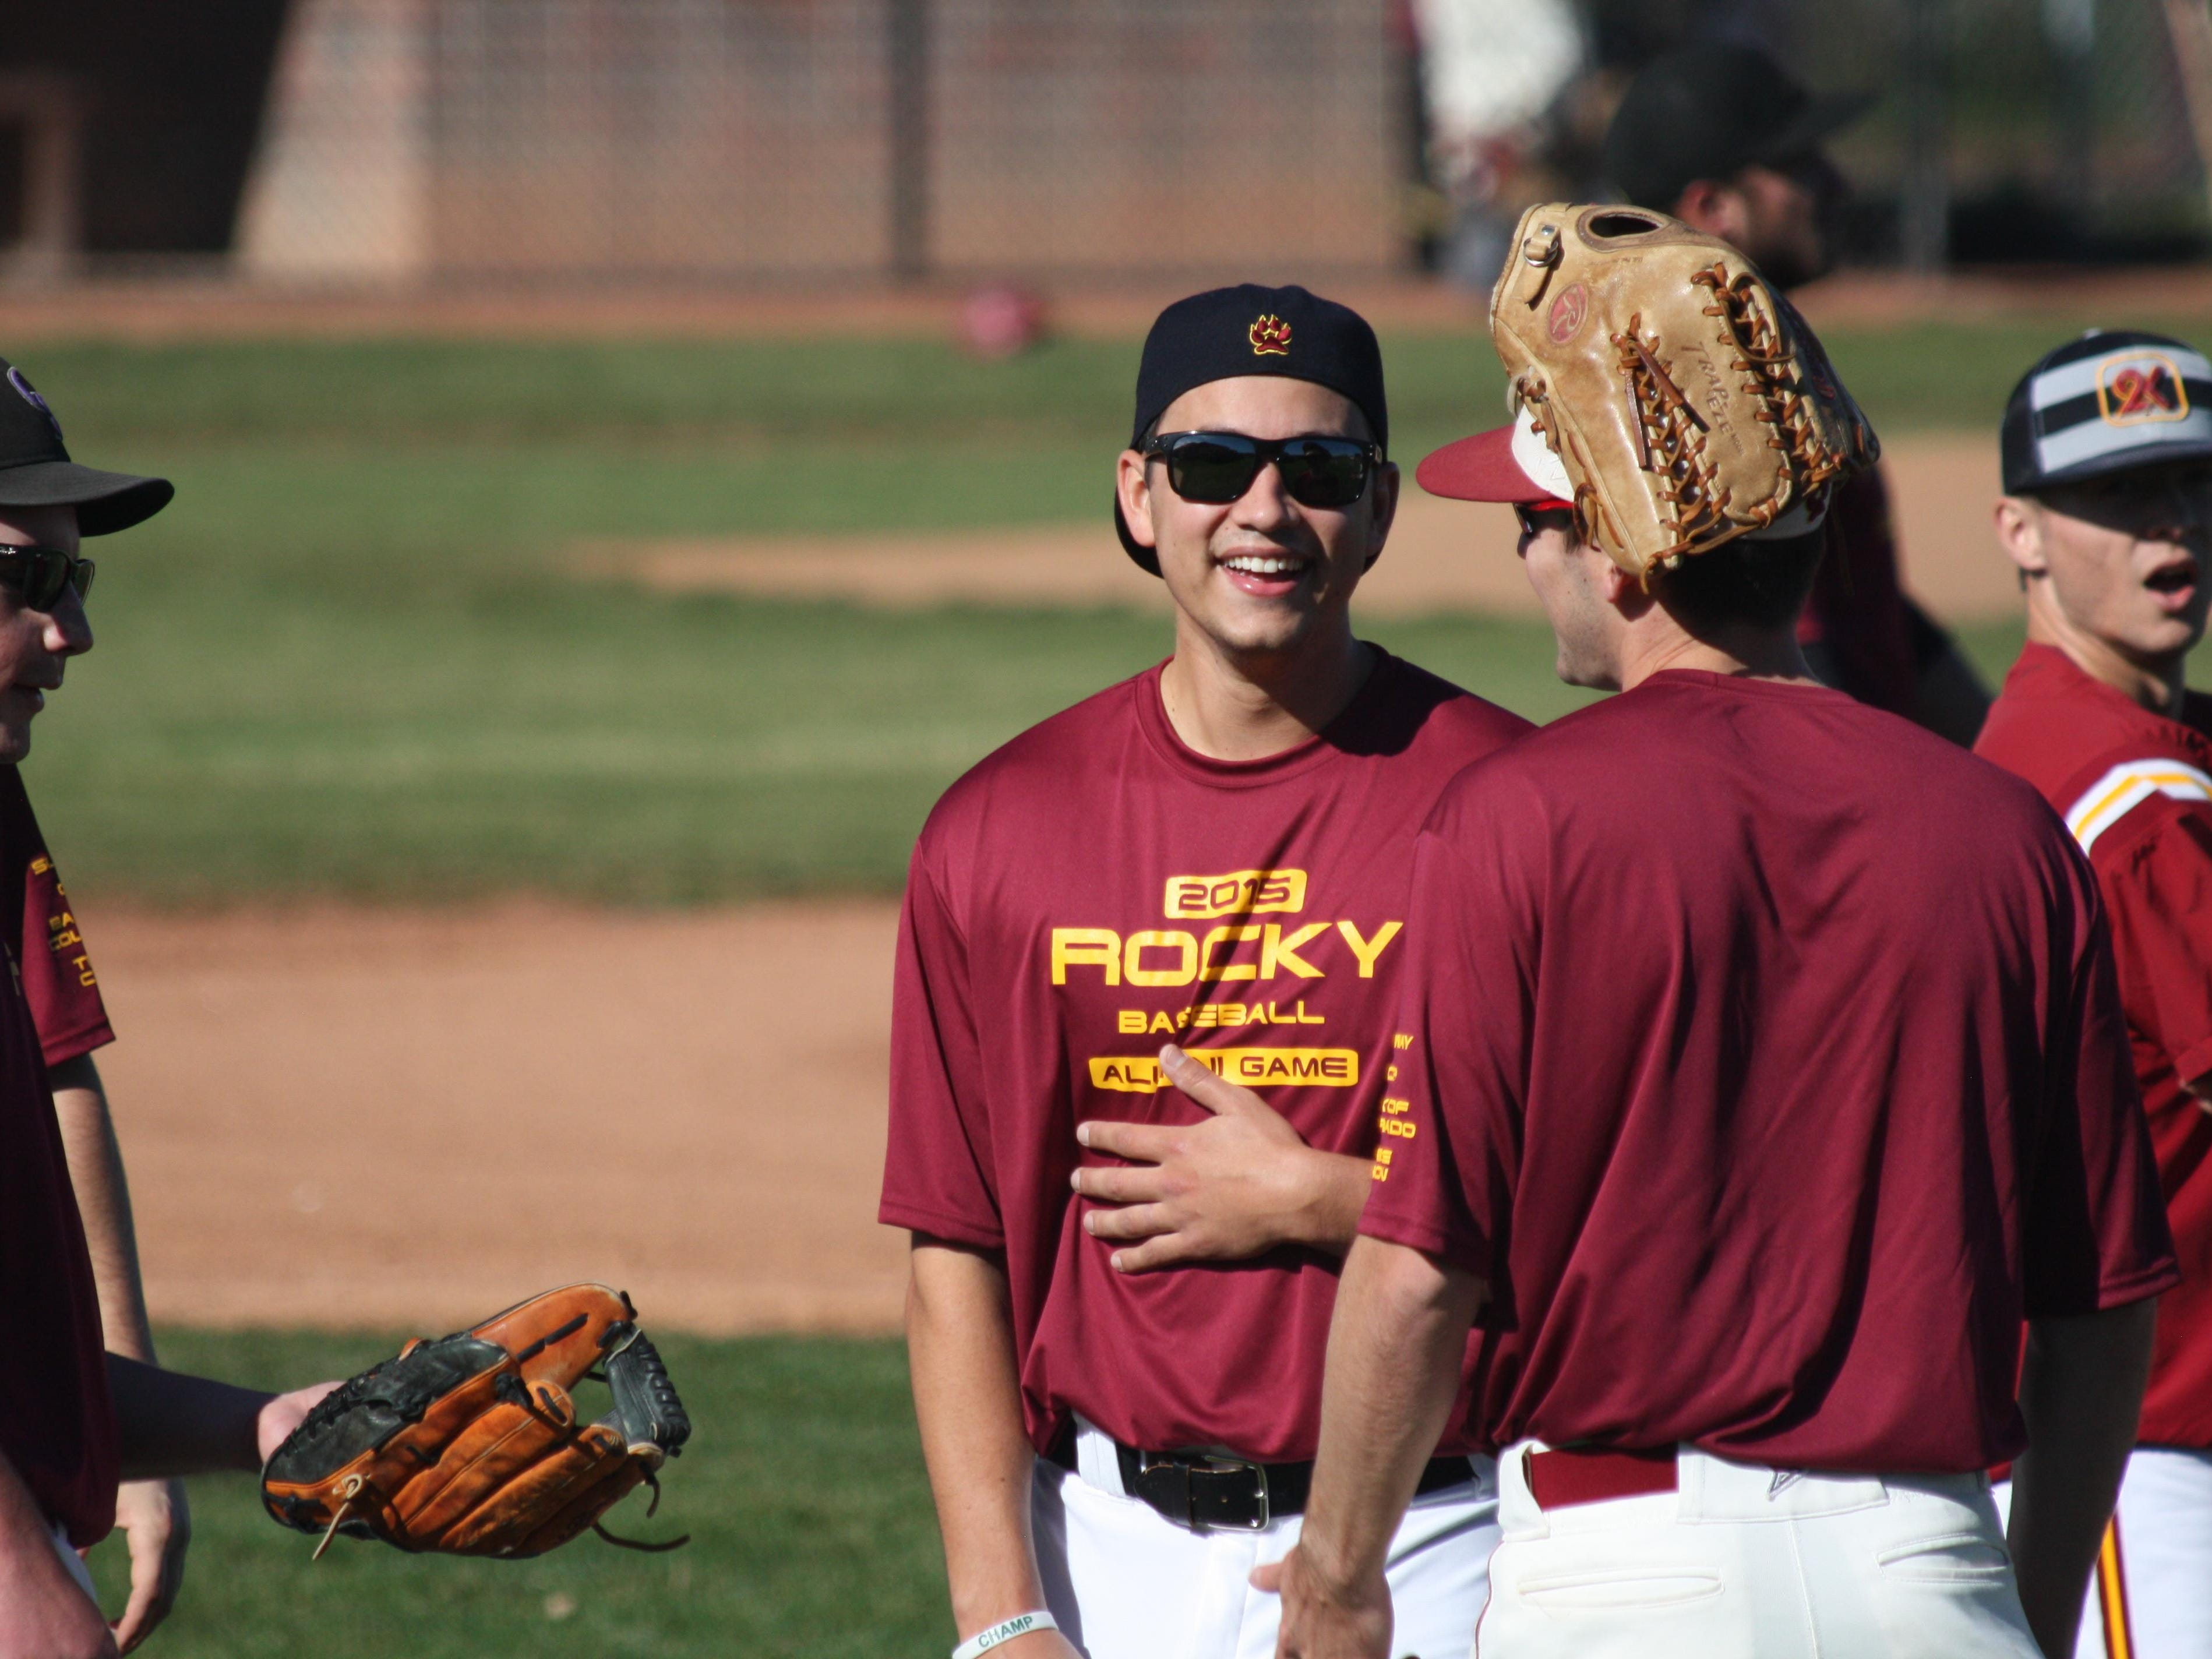 Former Rocky Mountain and current St. Louis Cardinals pitcher Marco Gonzales jokes with teammates before Saturday's alumni game.